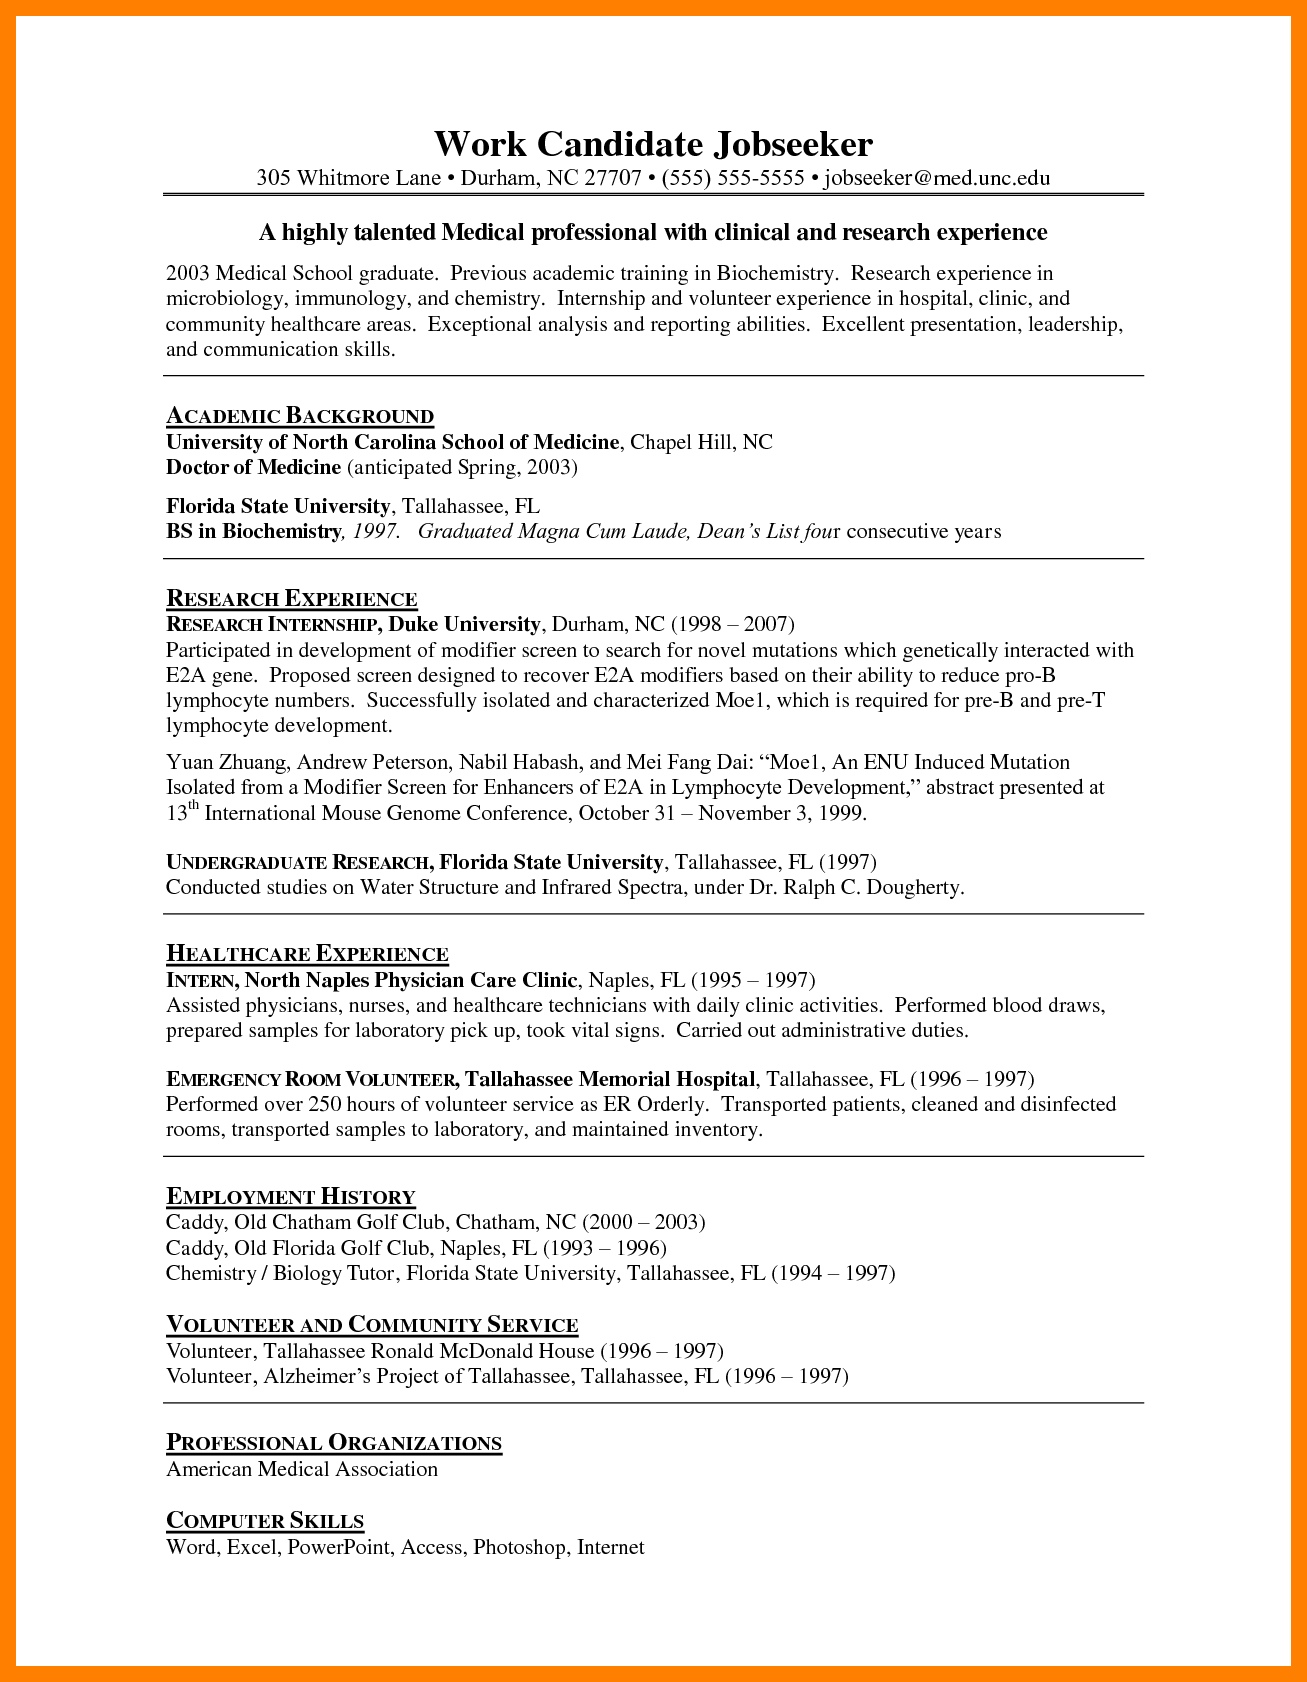 003 volunteer experience essay elementary school resume free community work hospital coordinator